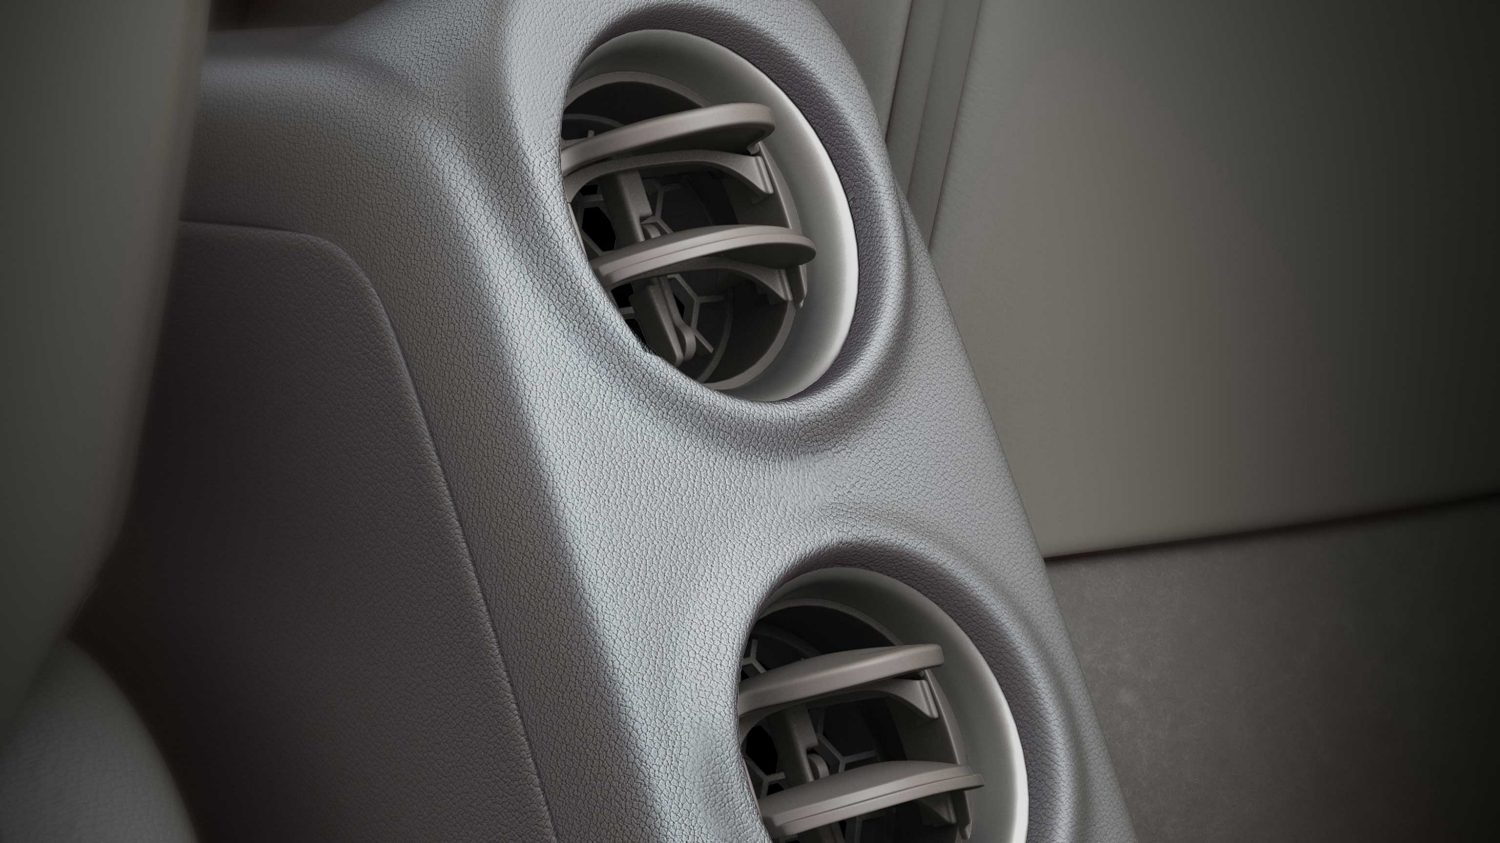 Rear center vents